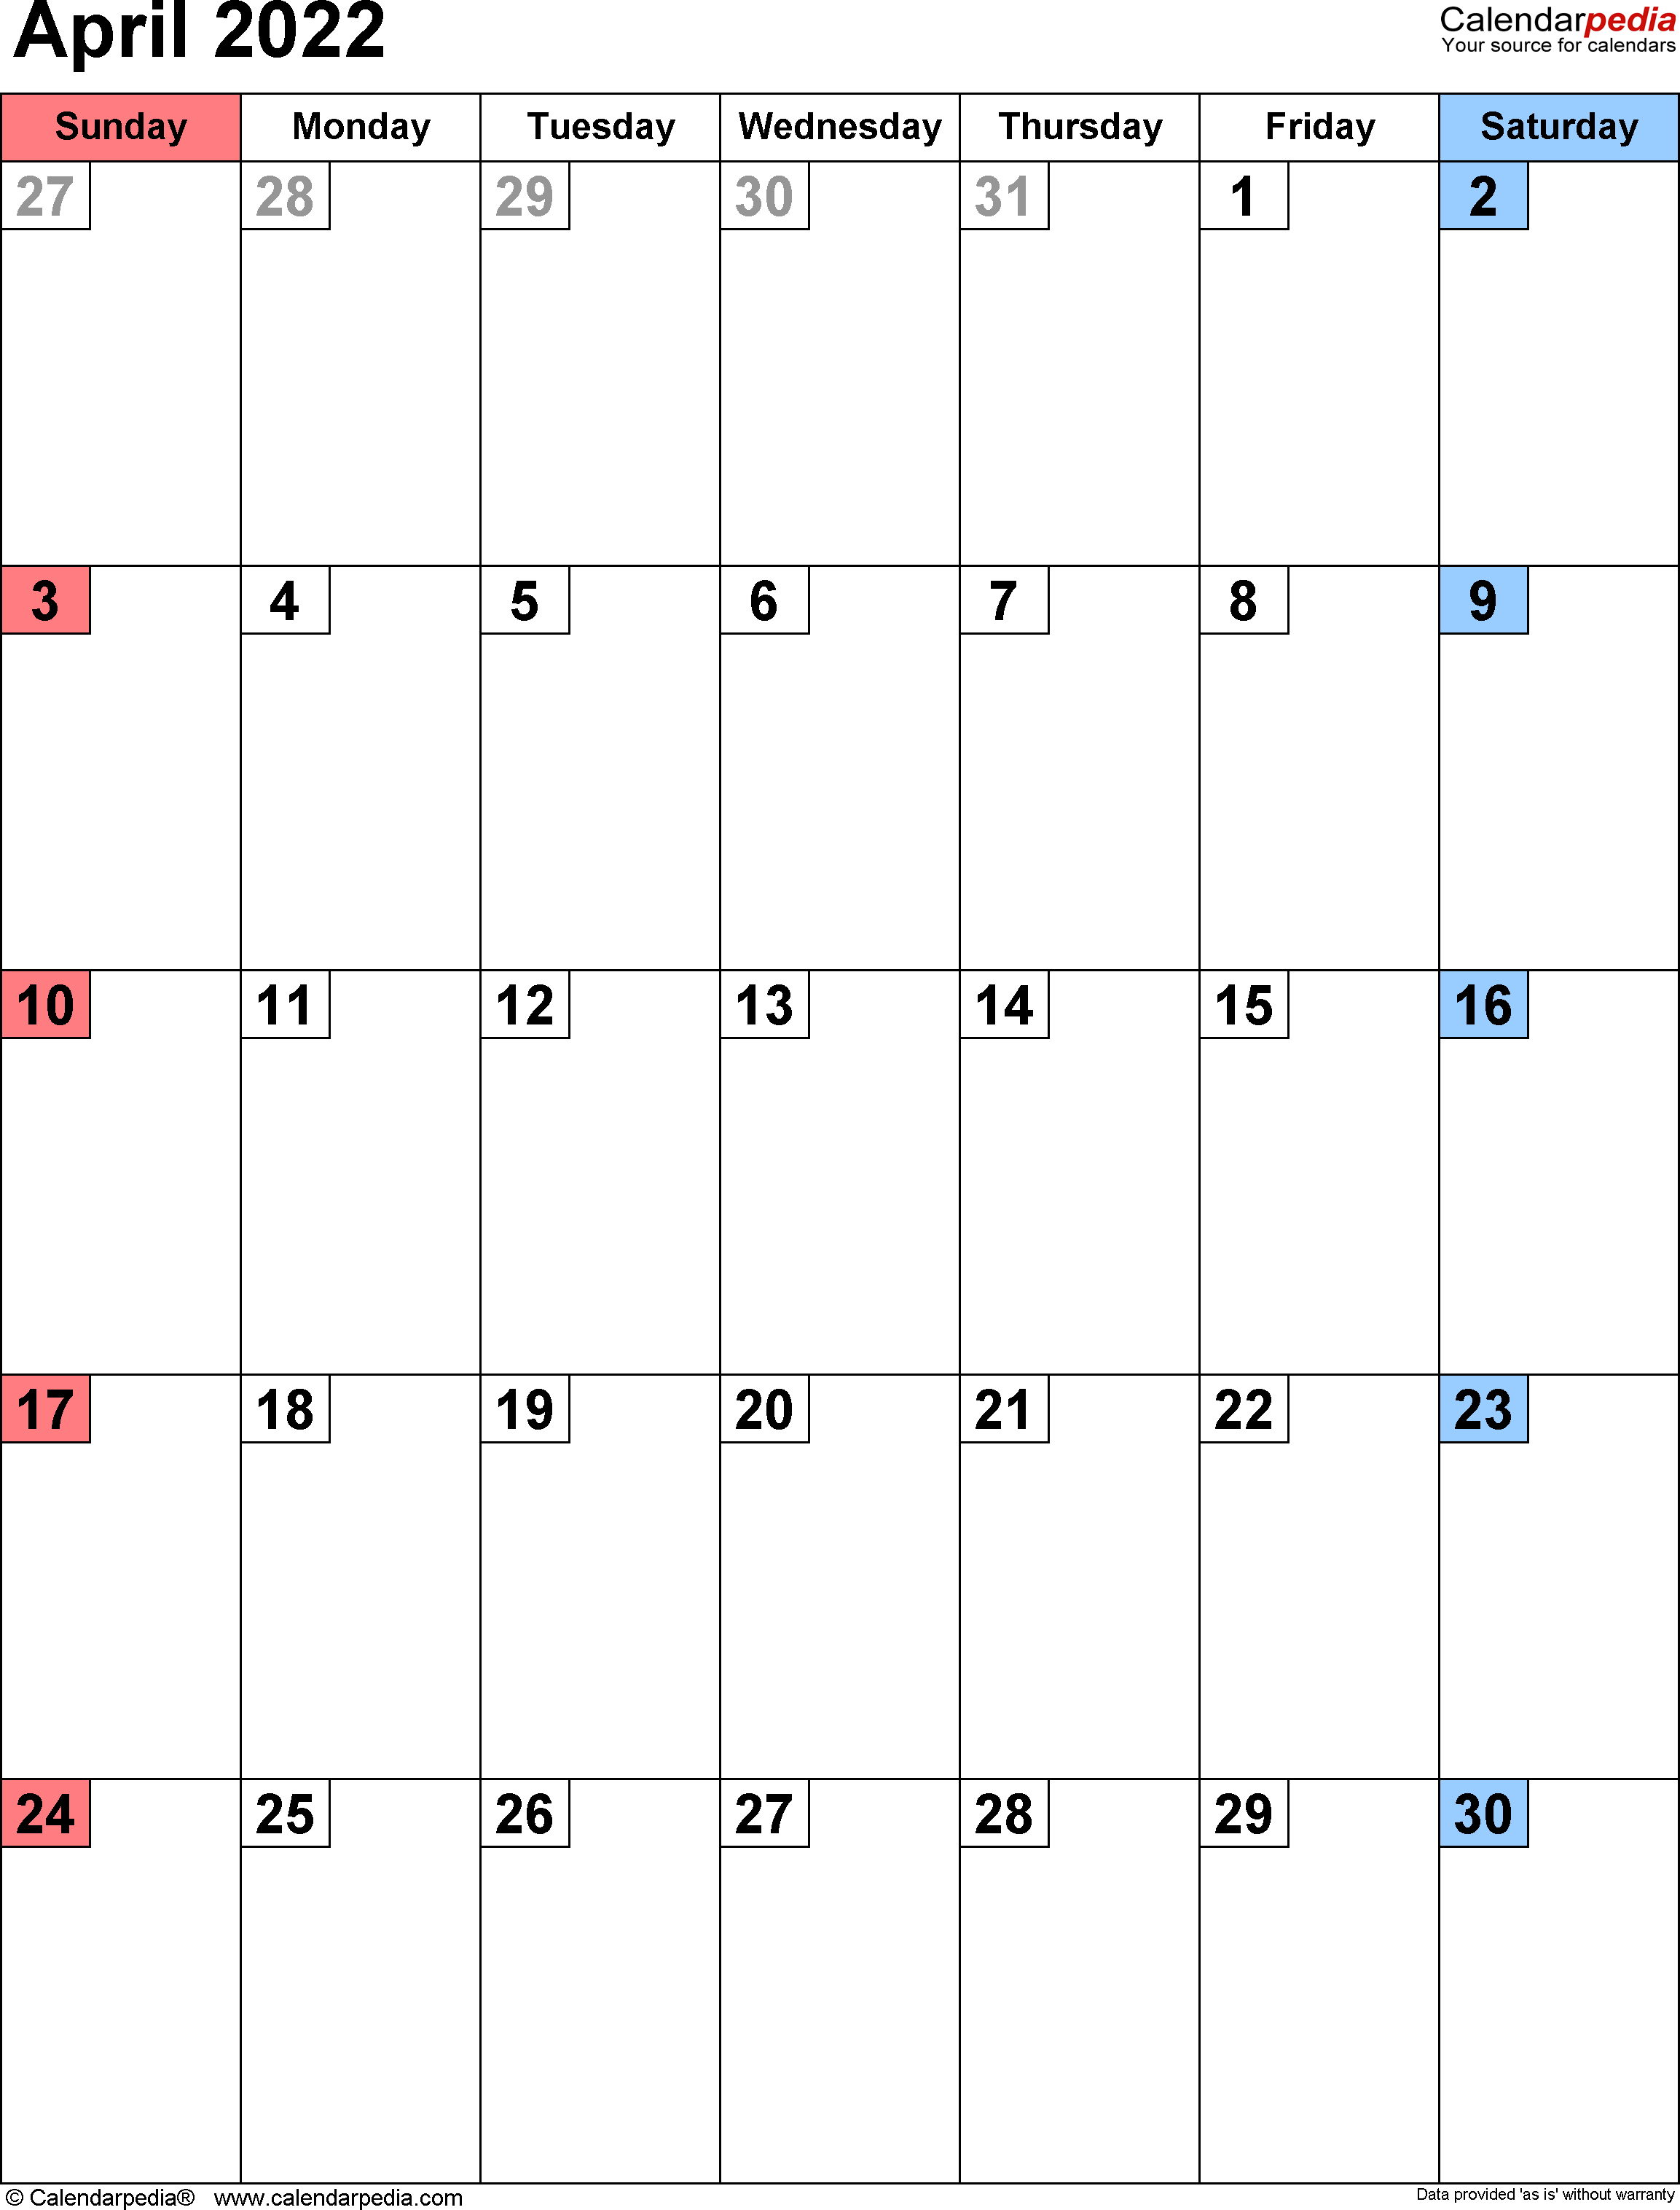 April 2022 Calendar Template.April 2022 Calendar Templates For Word Excel And Pdf